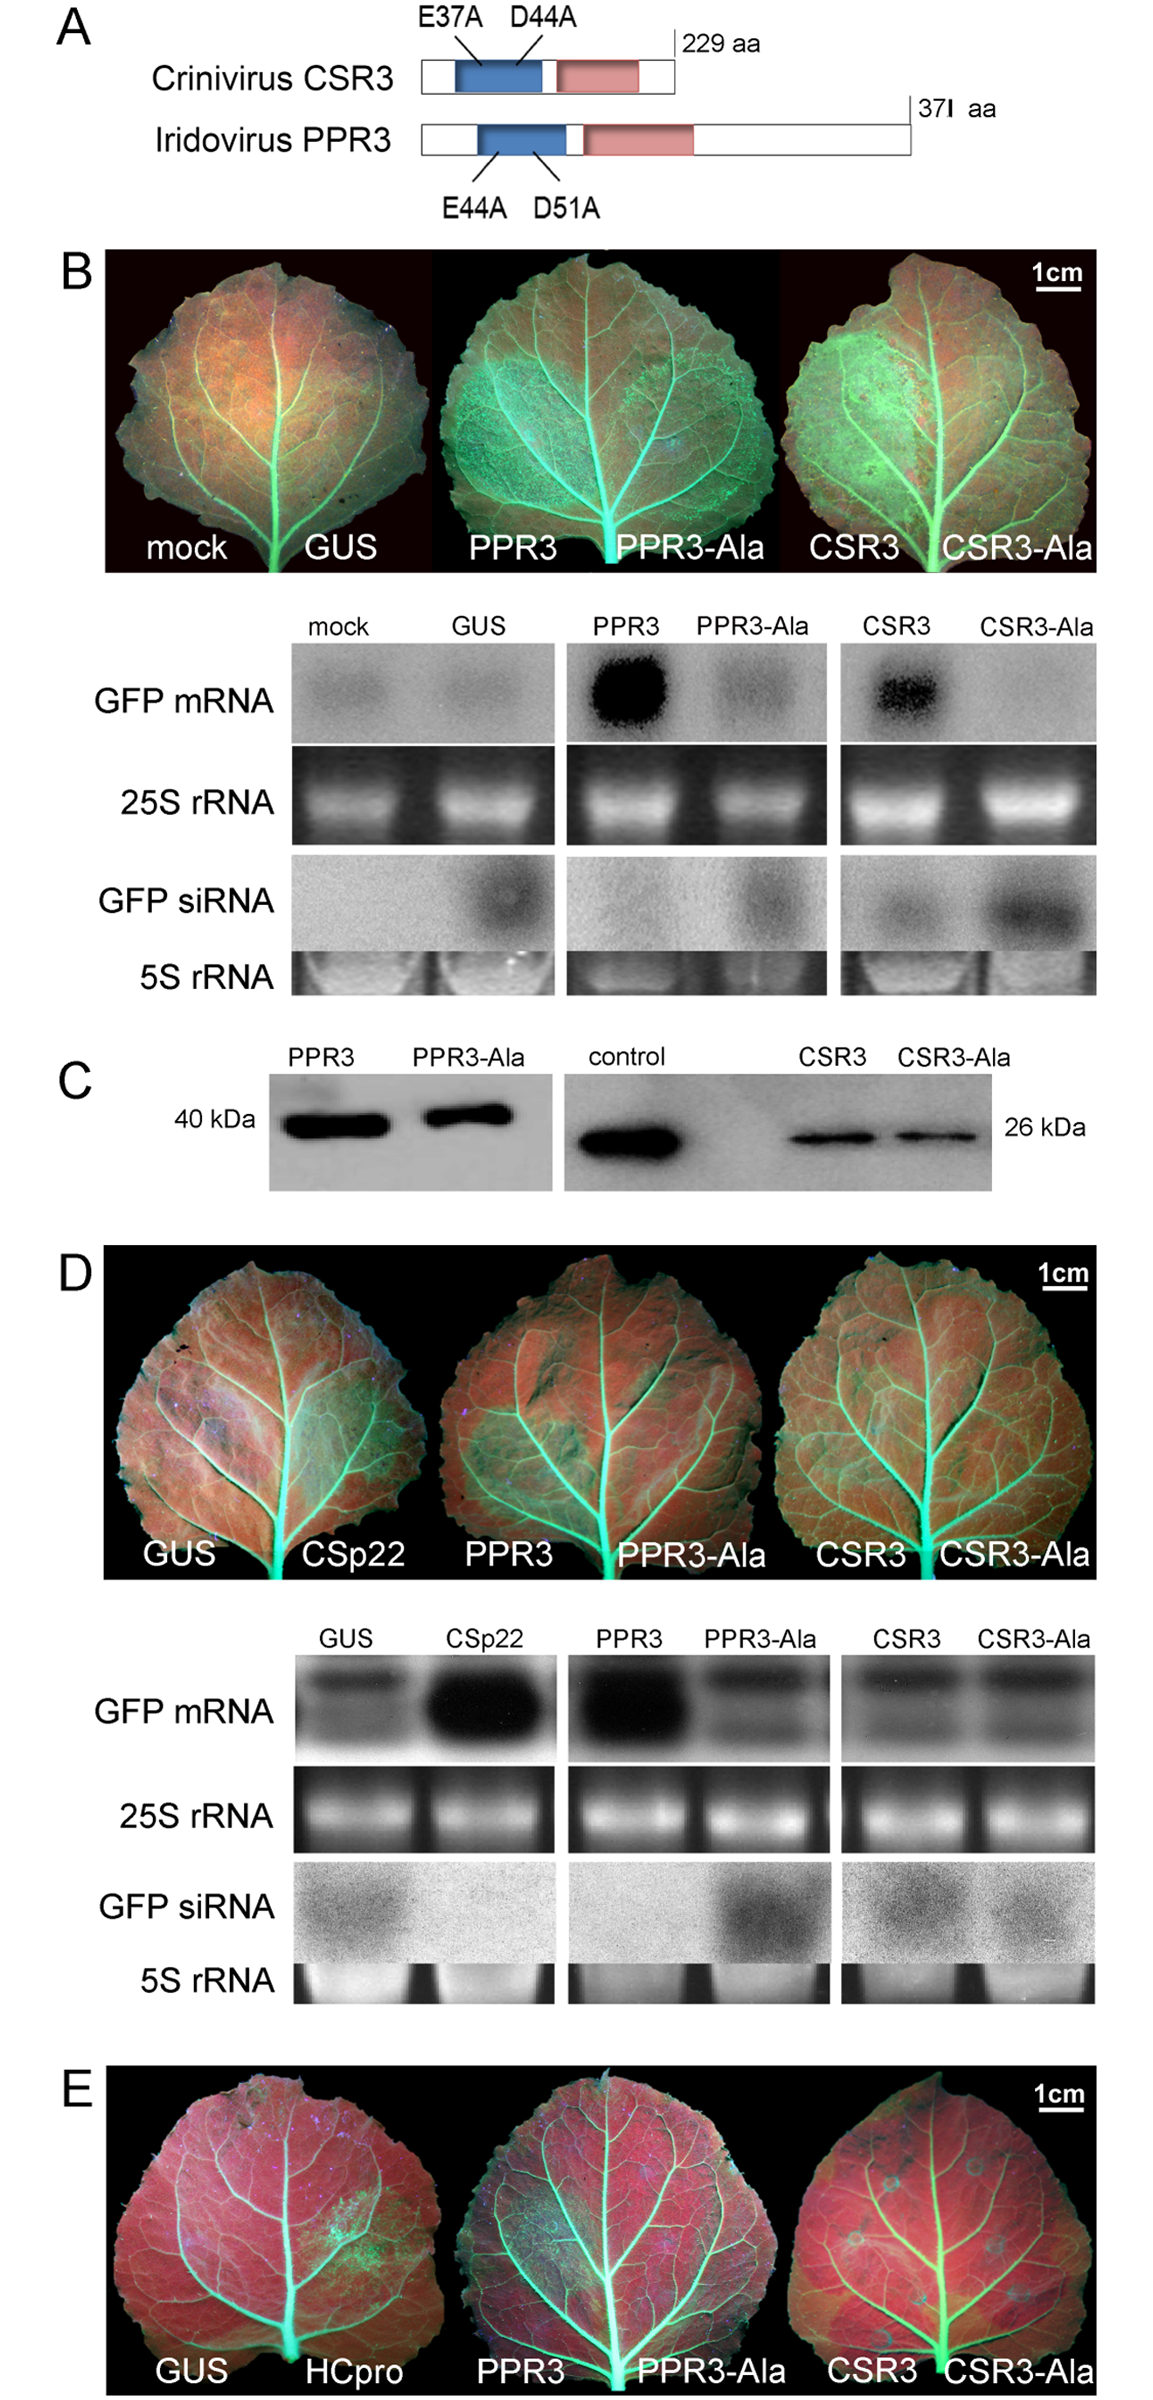 Class 1 RNaseIII endoribonucleases of PPIV (PPR3) and SPCSV (CSR3) suppress RNAi in leaves of <i>Nicotiana benthamiana</i>.